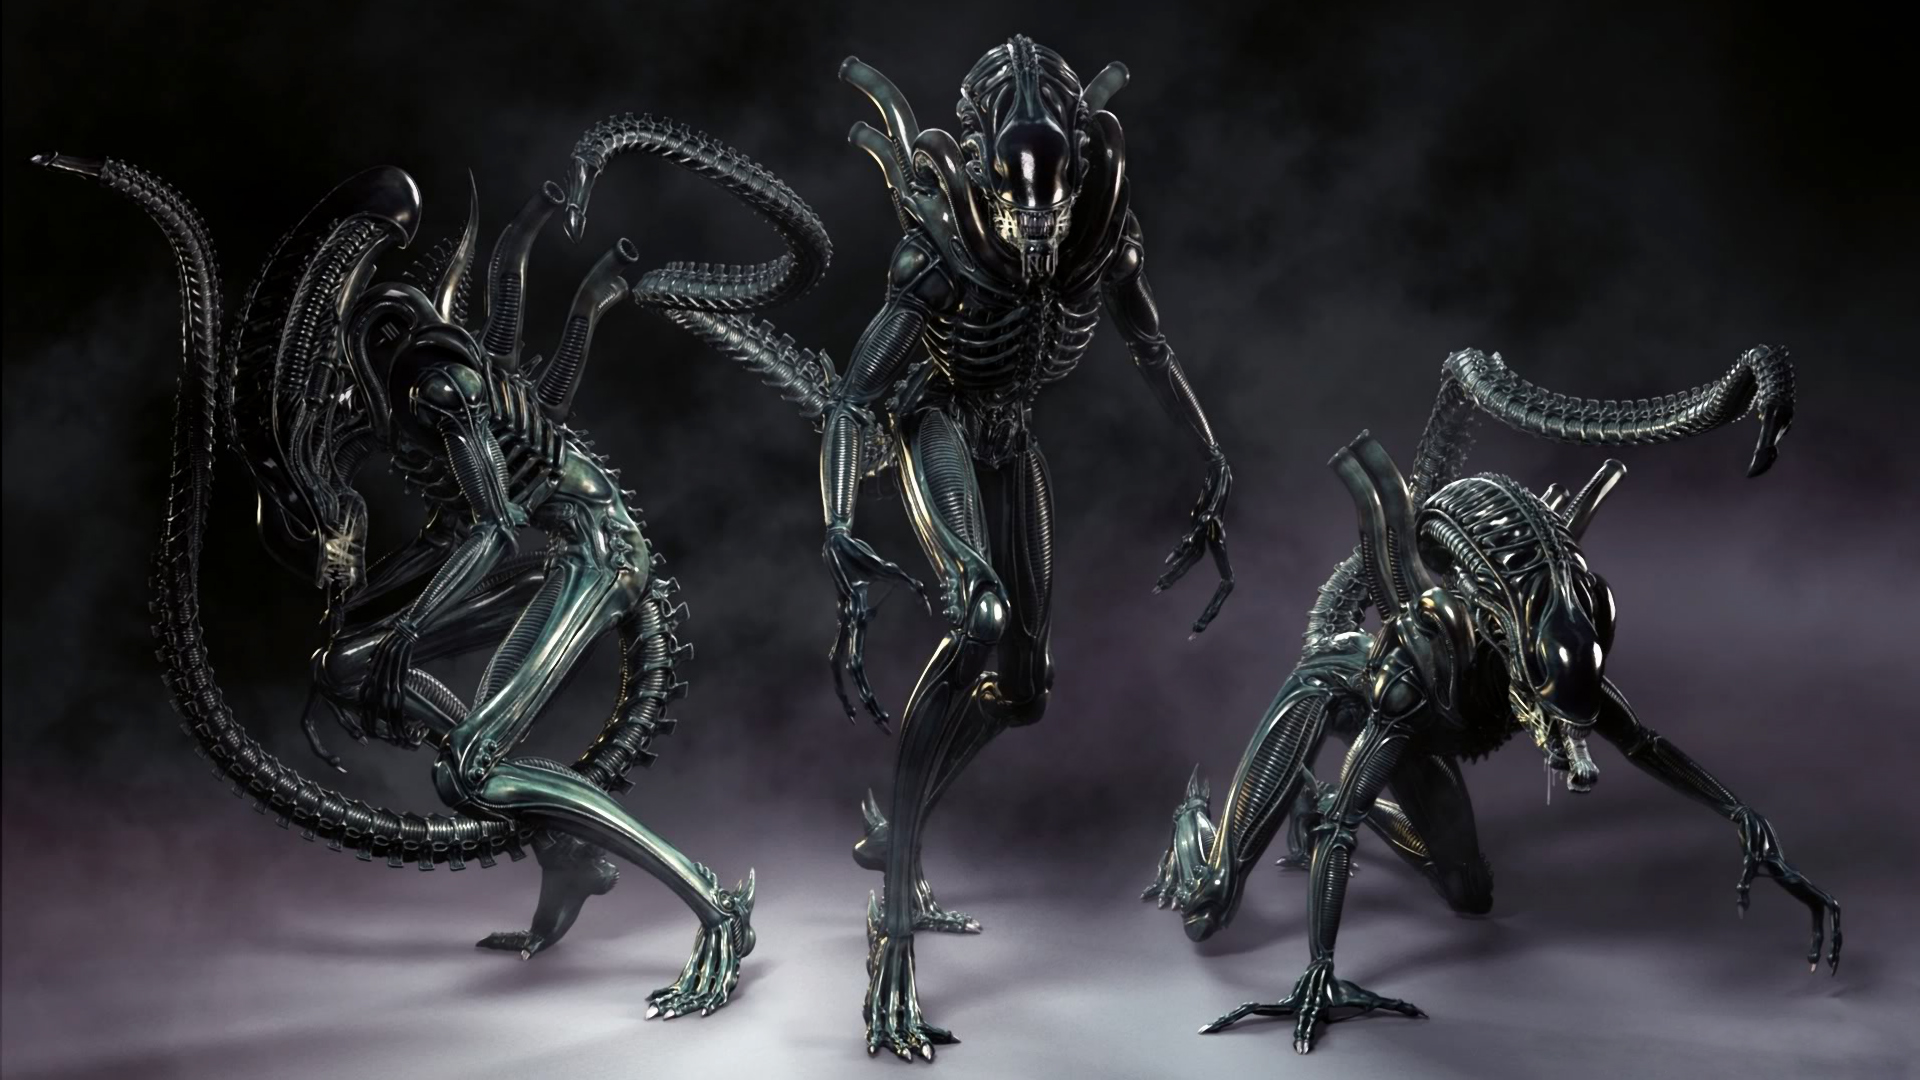 Download Xenomorph Alien Wallpaper 1920x1080 Wallpoper 1920x1080